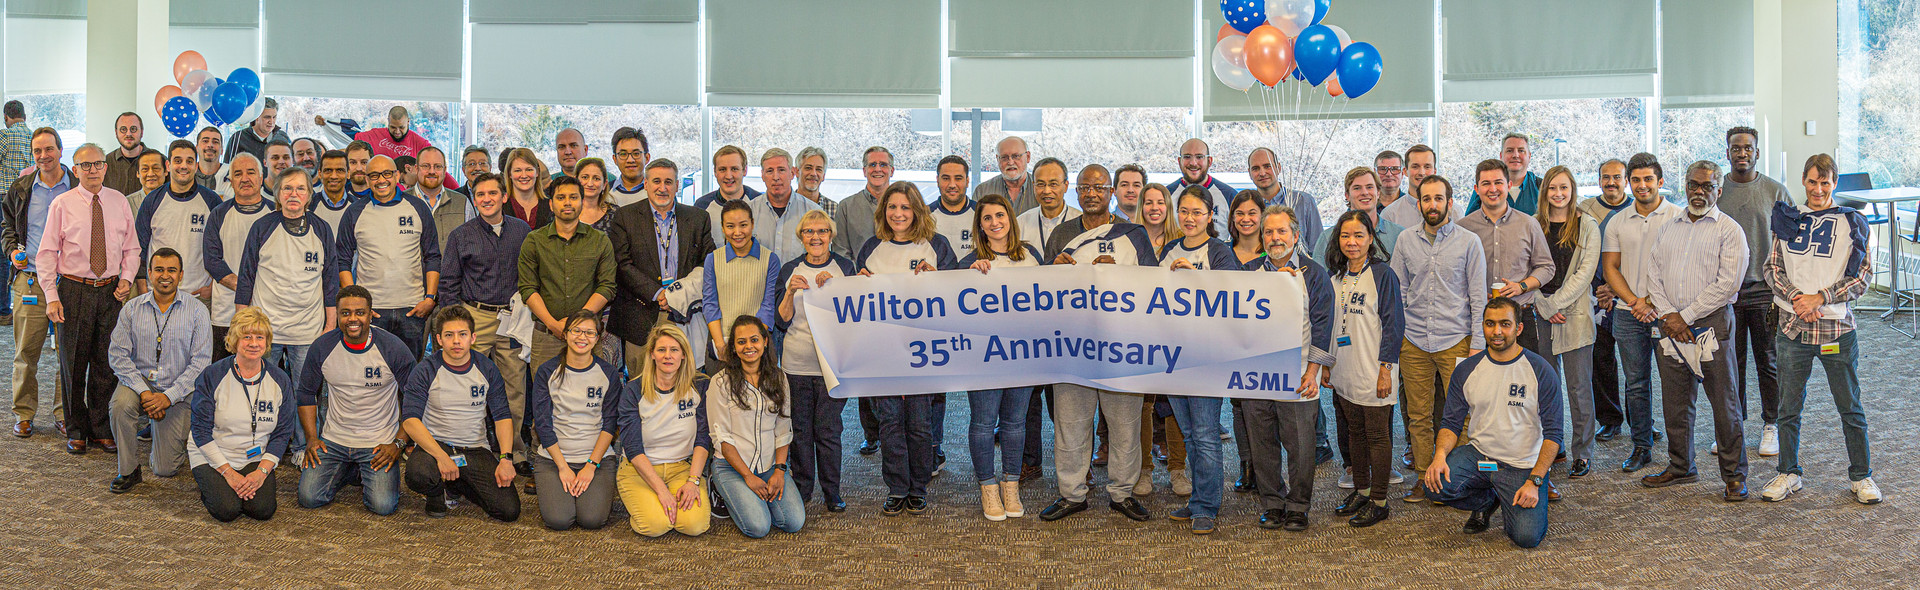 ASML-35TH ANNIVERSARY